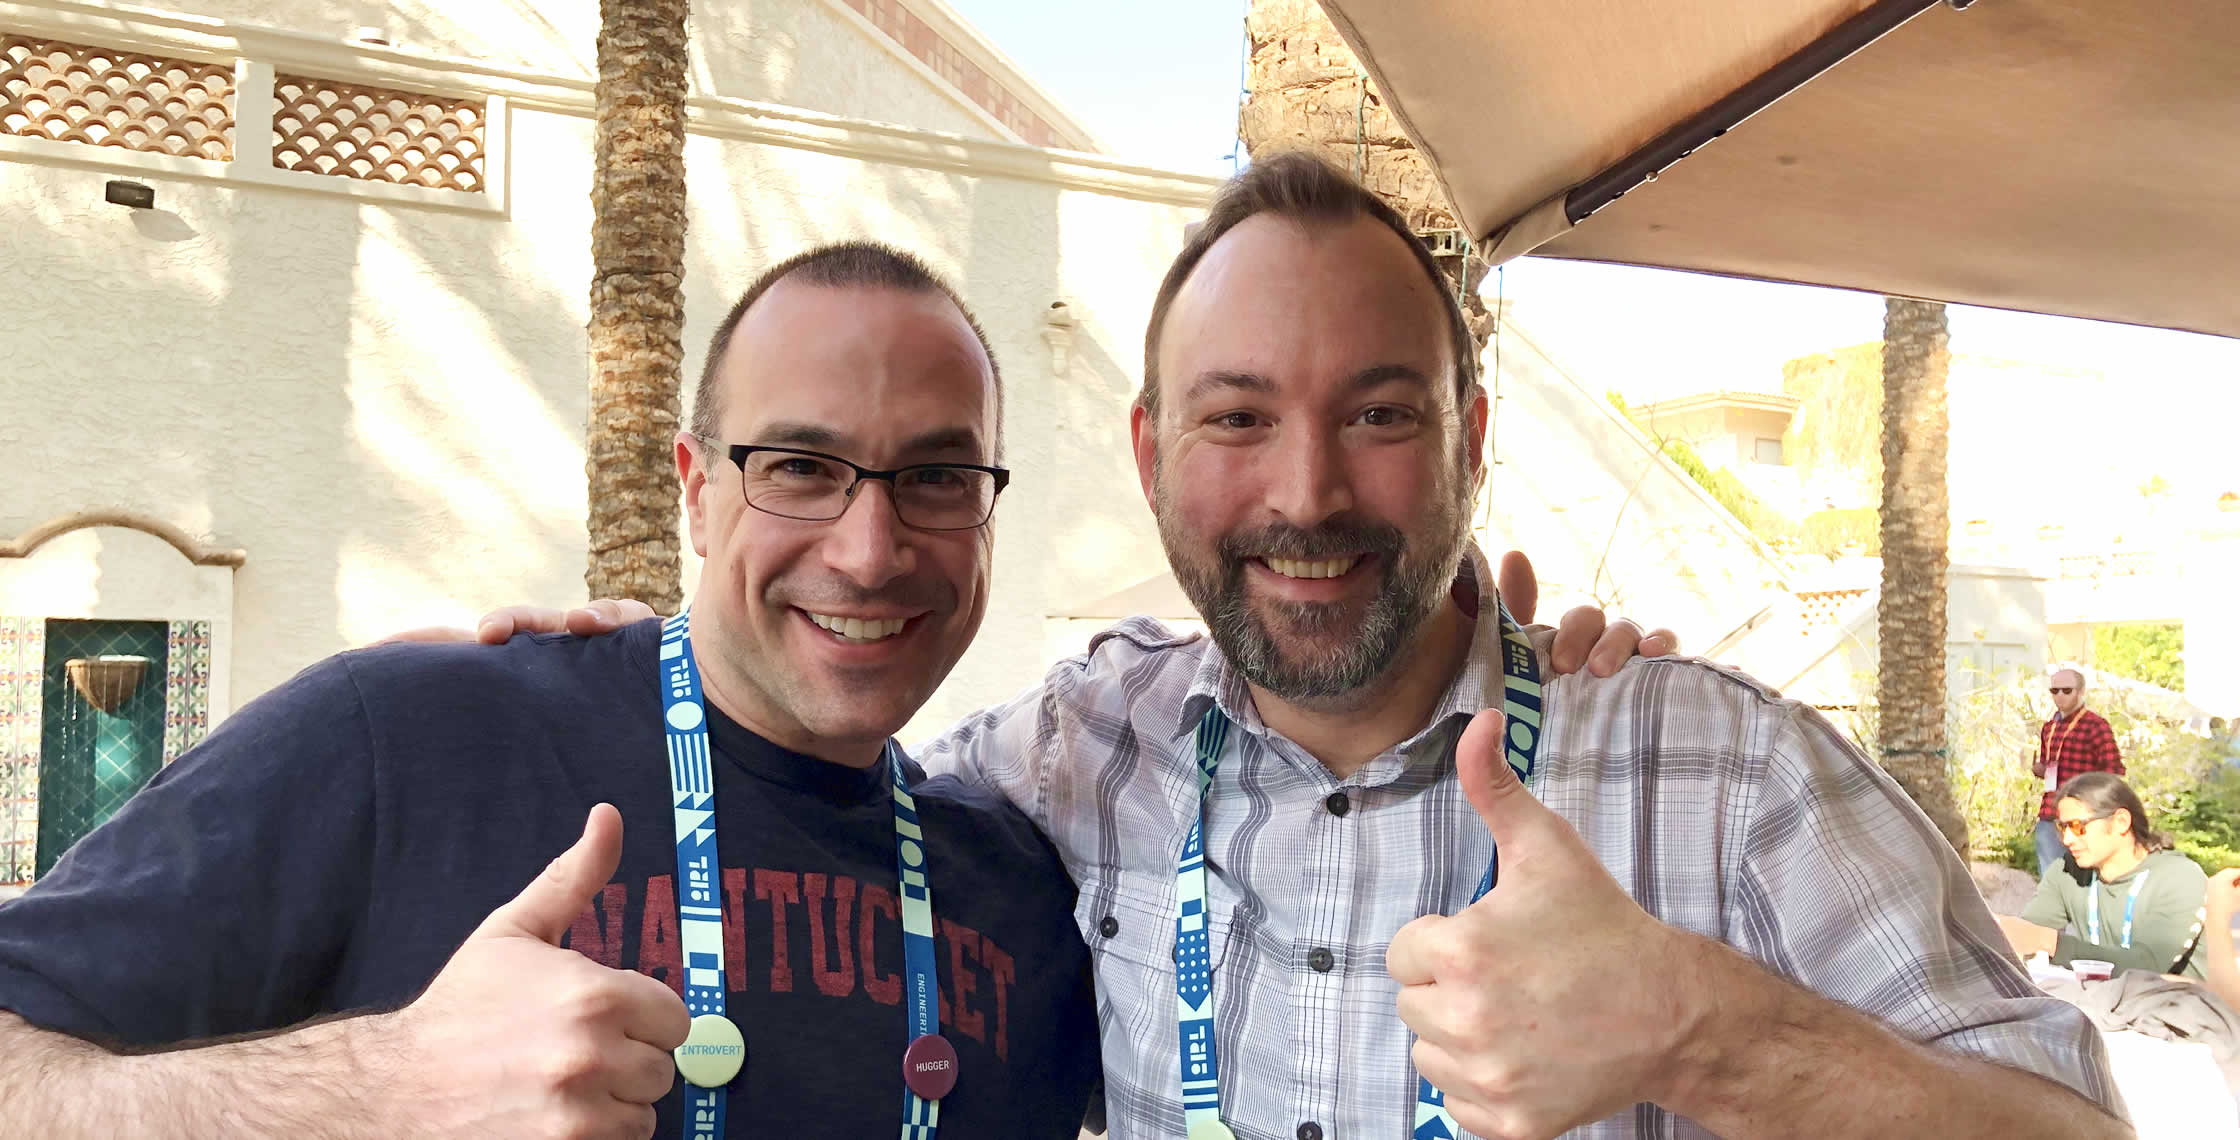 Ben Nadel at InVision In Real Life (IRL) 2019 (Phoenix, AZ) with: Joe Gores